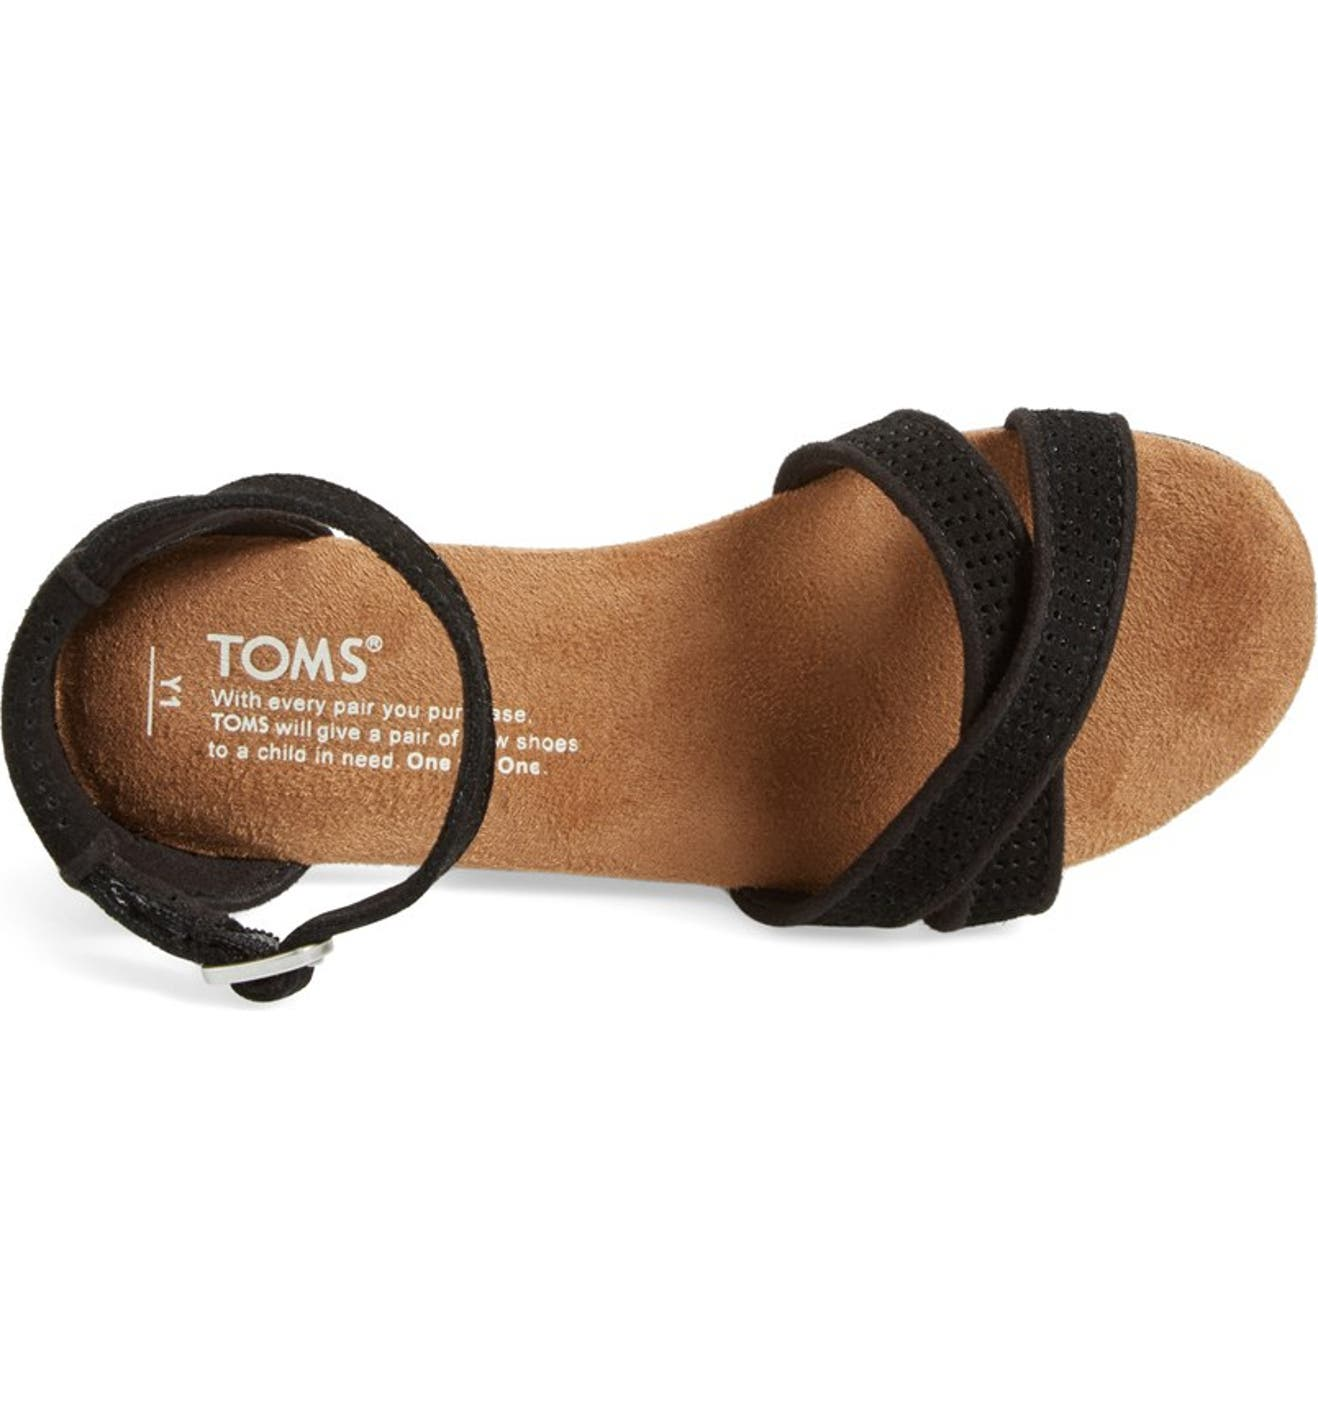 909cce4fa684 TOMS  Correa - Youth  Suede Sandal (Toddler